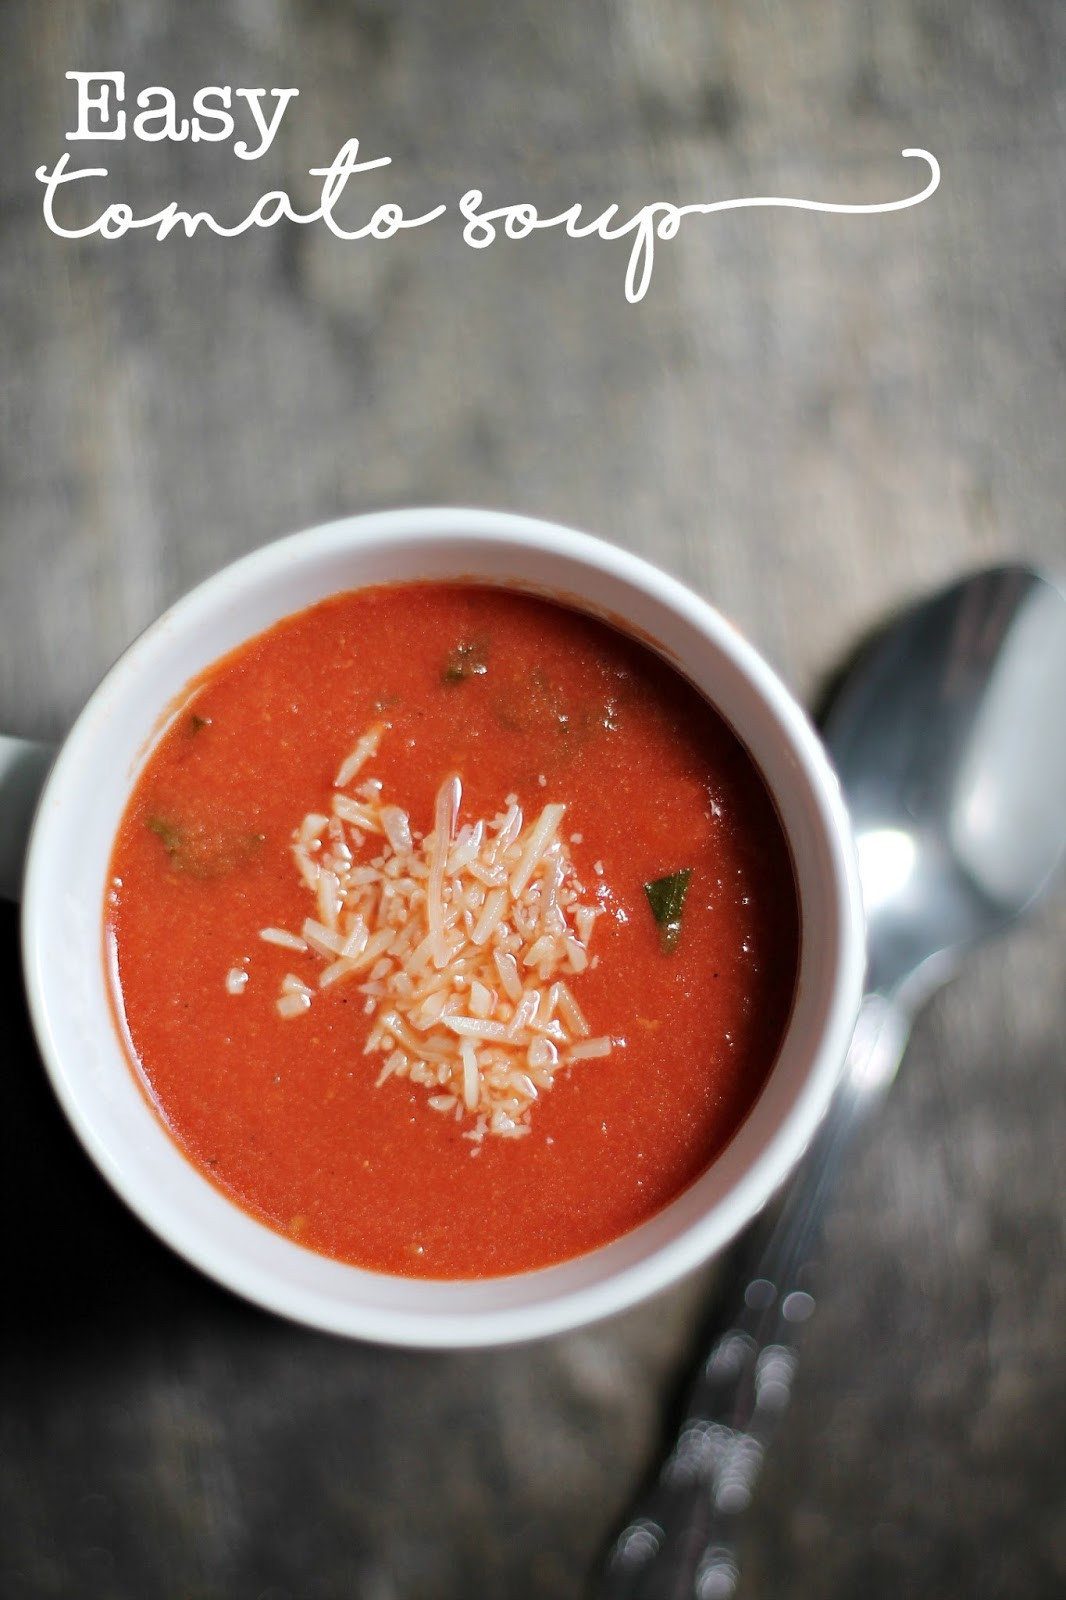 Easy Tomato Soup  Easy Tomato Soup Louisiana Bride